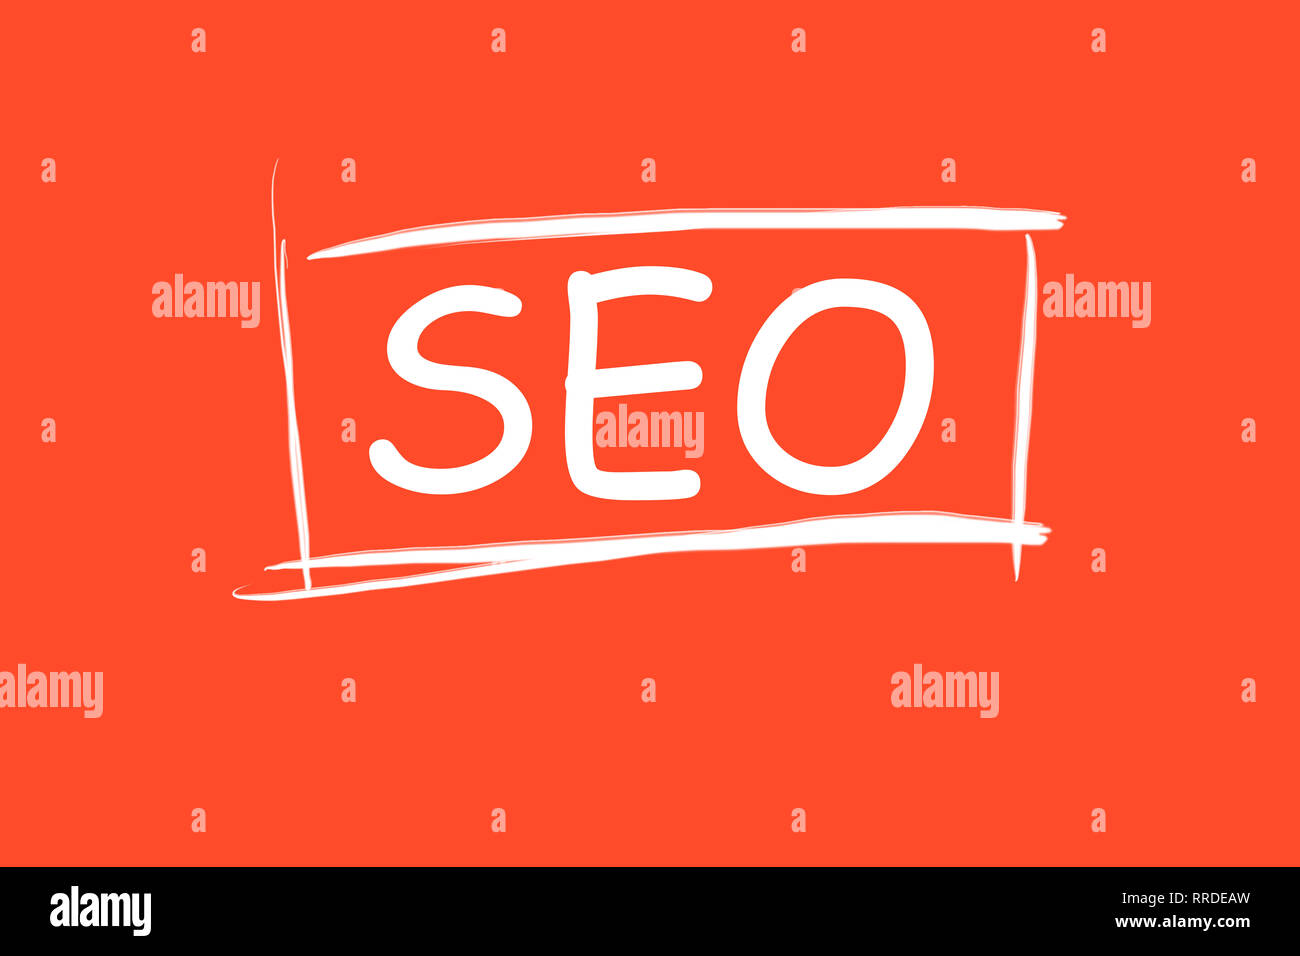 SEO inscription in frame on red background. Search engine optimization. Increase website traffic - Stock Image